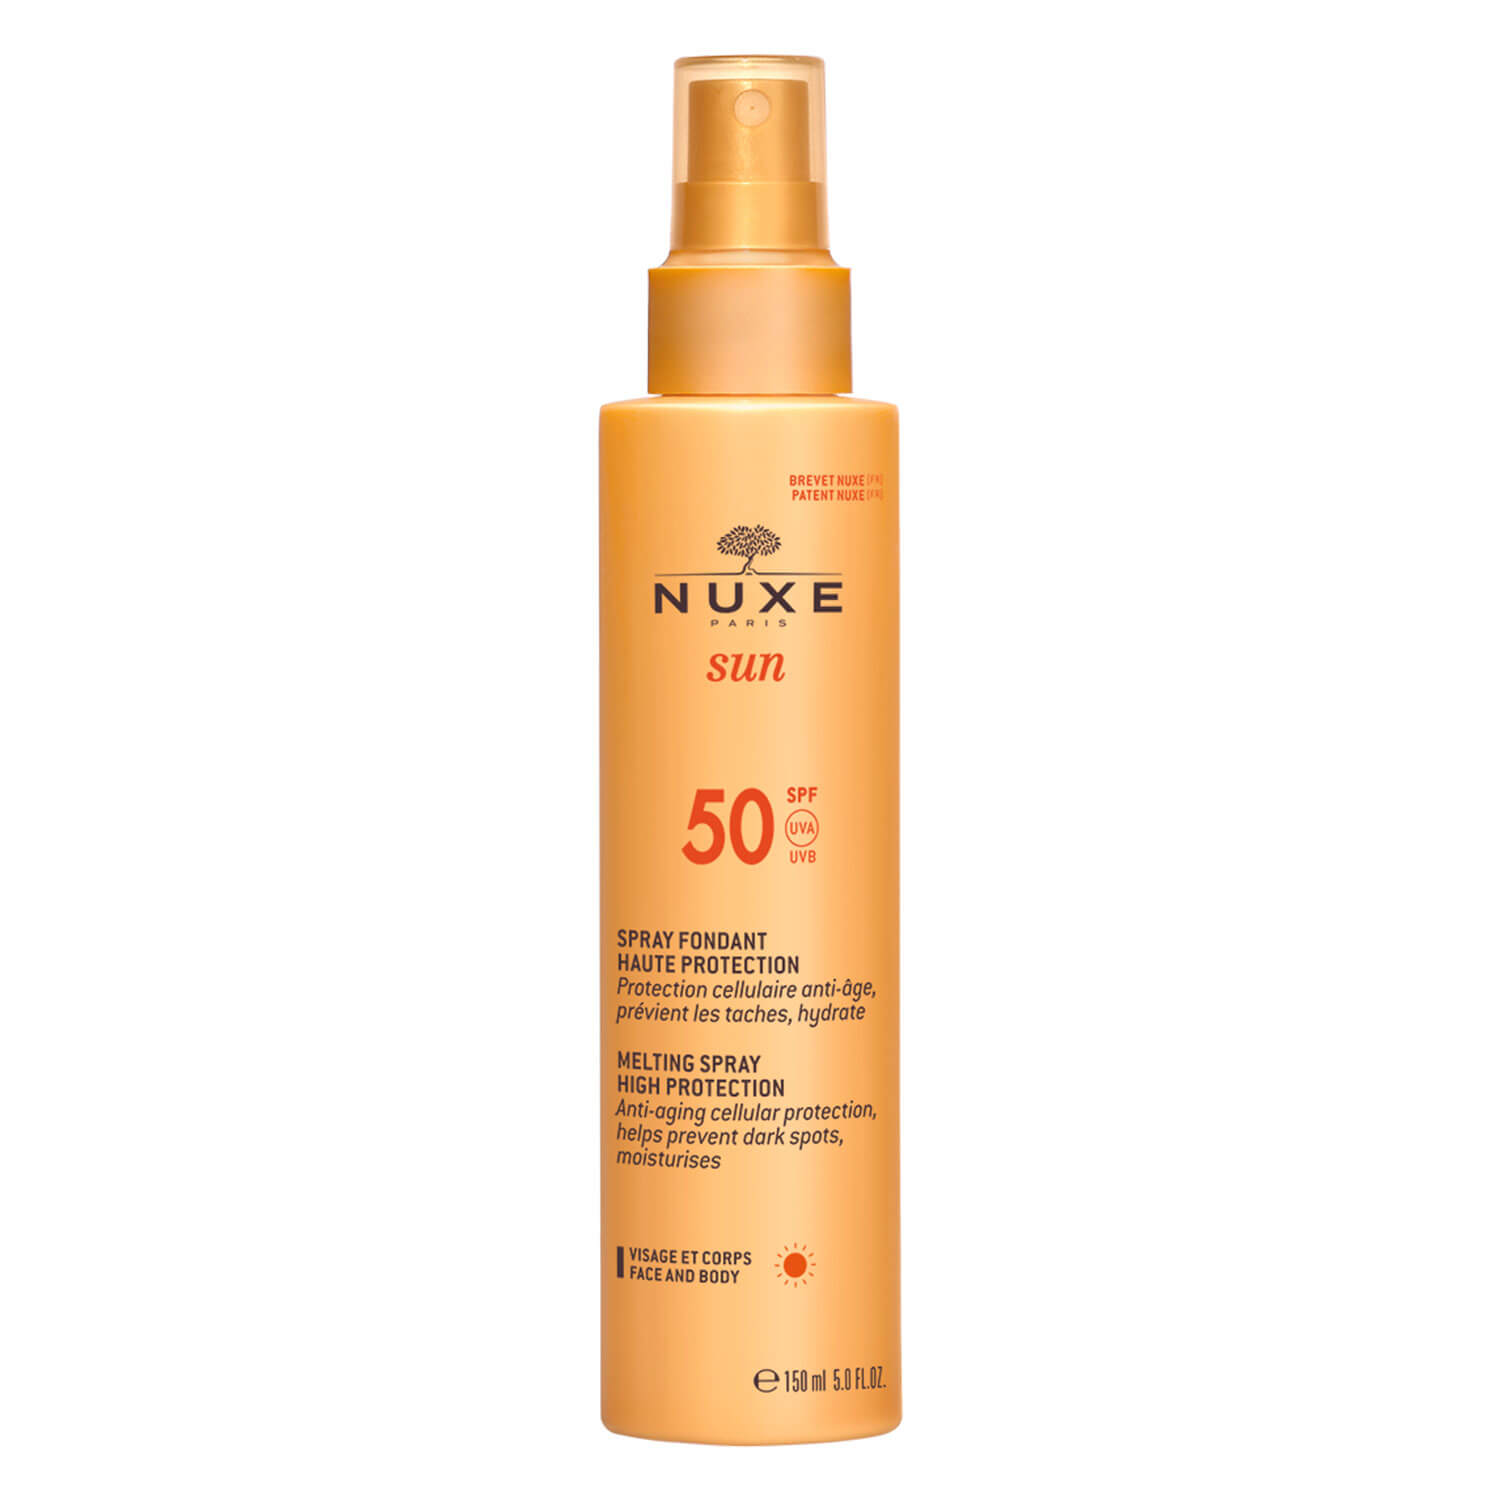 Nuxe Sun - Spray Fondant Haute Protection SPF50